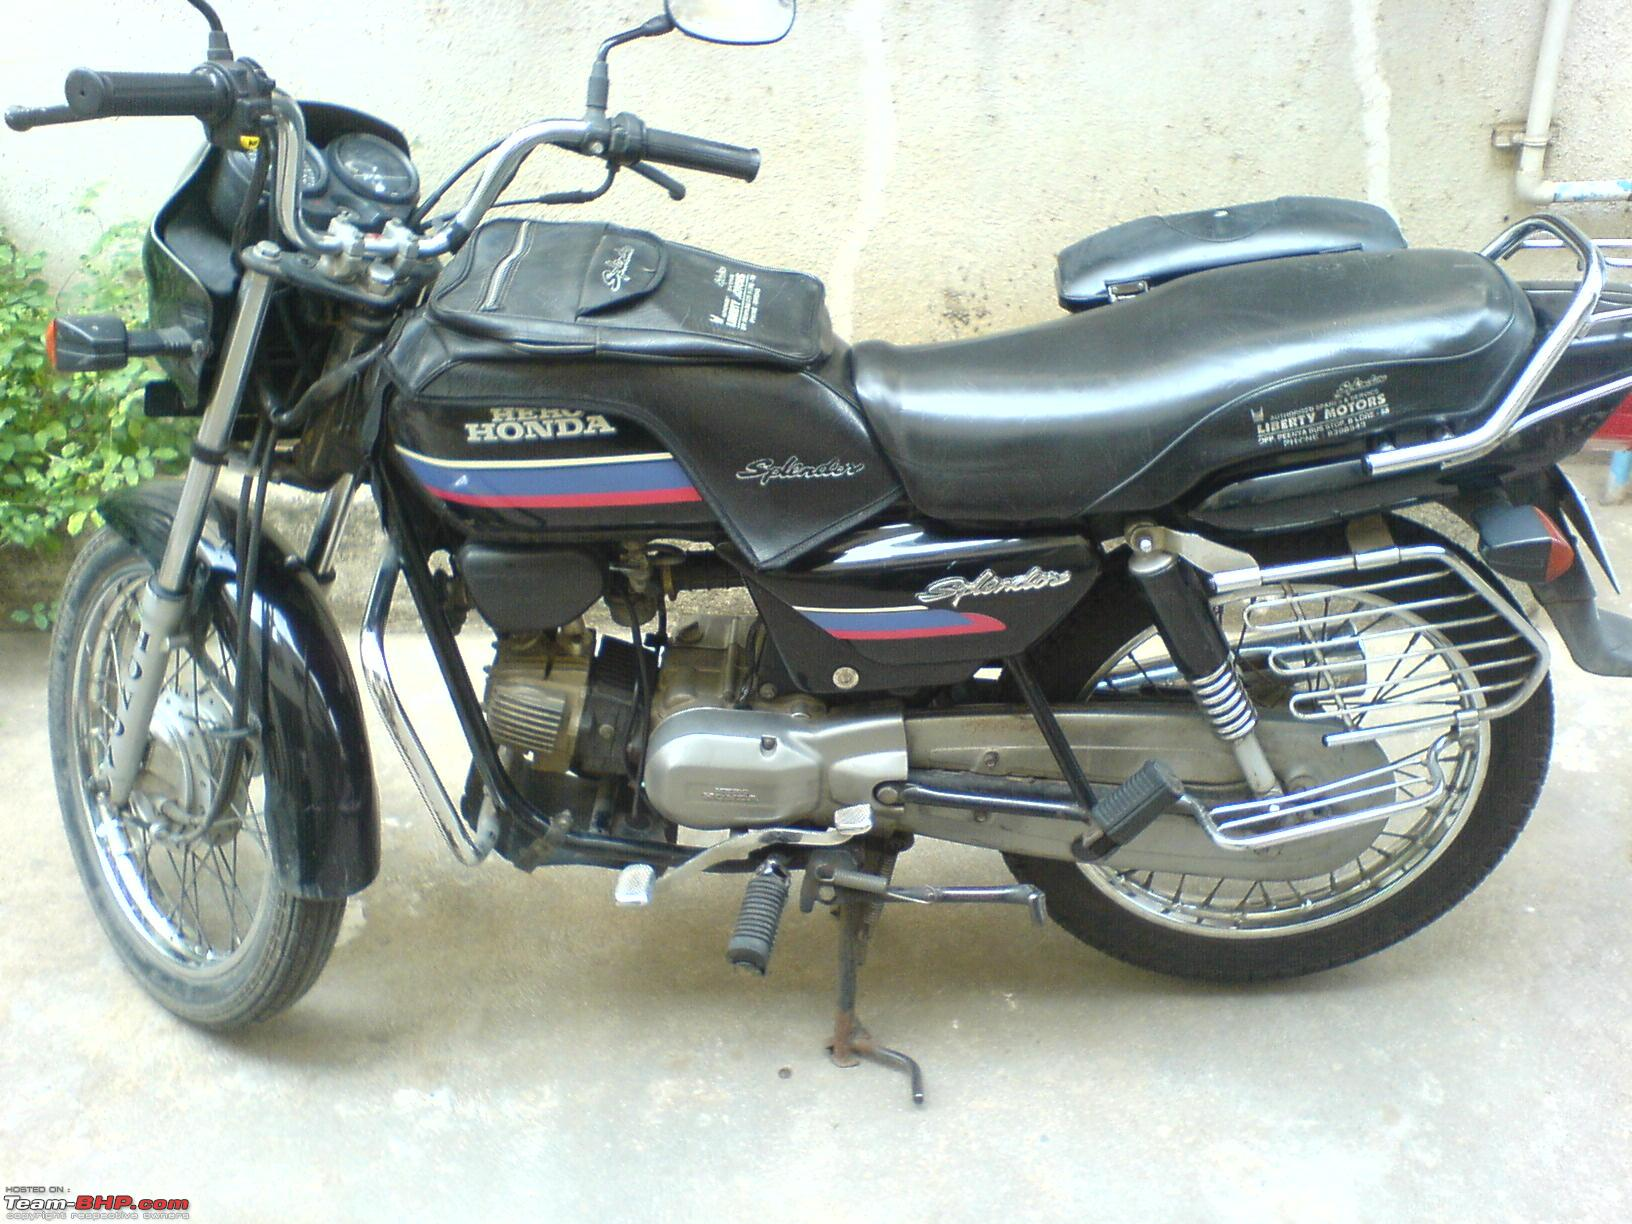 Hero Honda Spendor+ #9